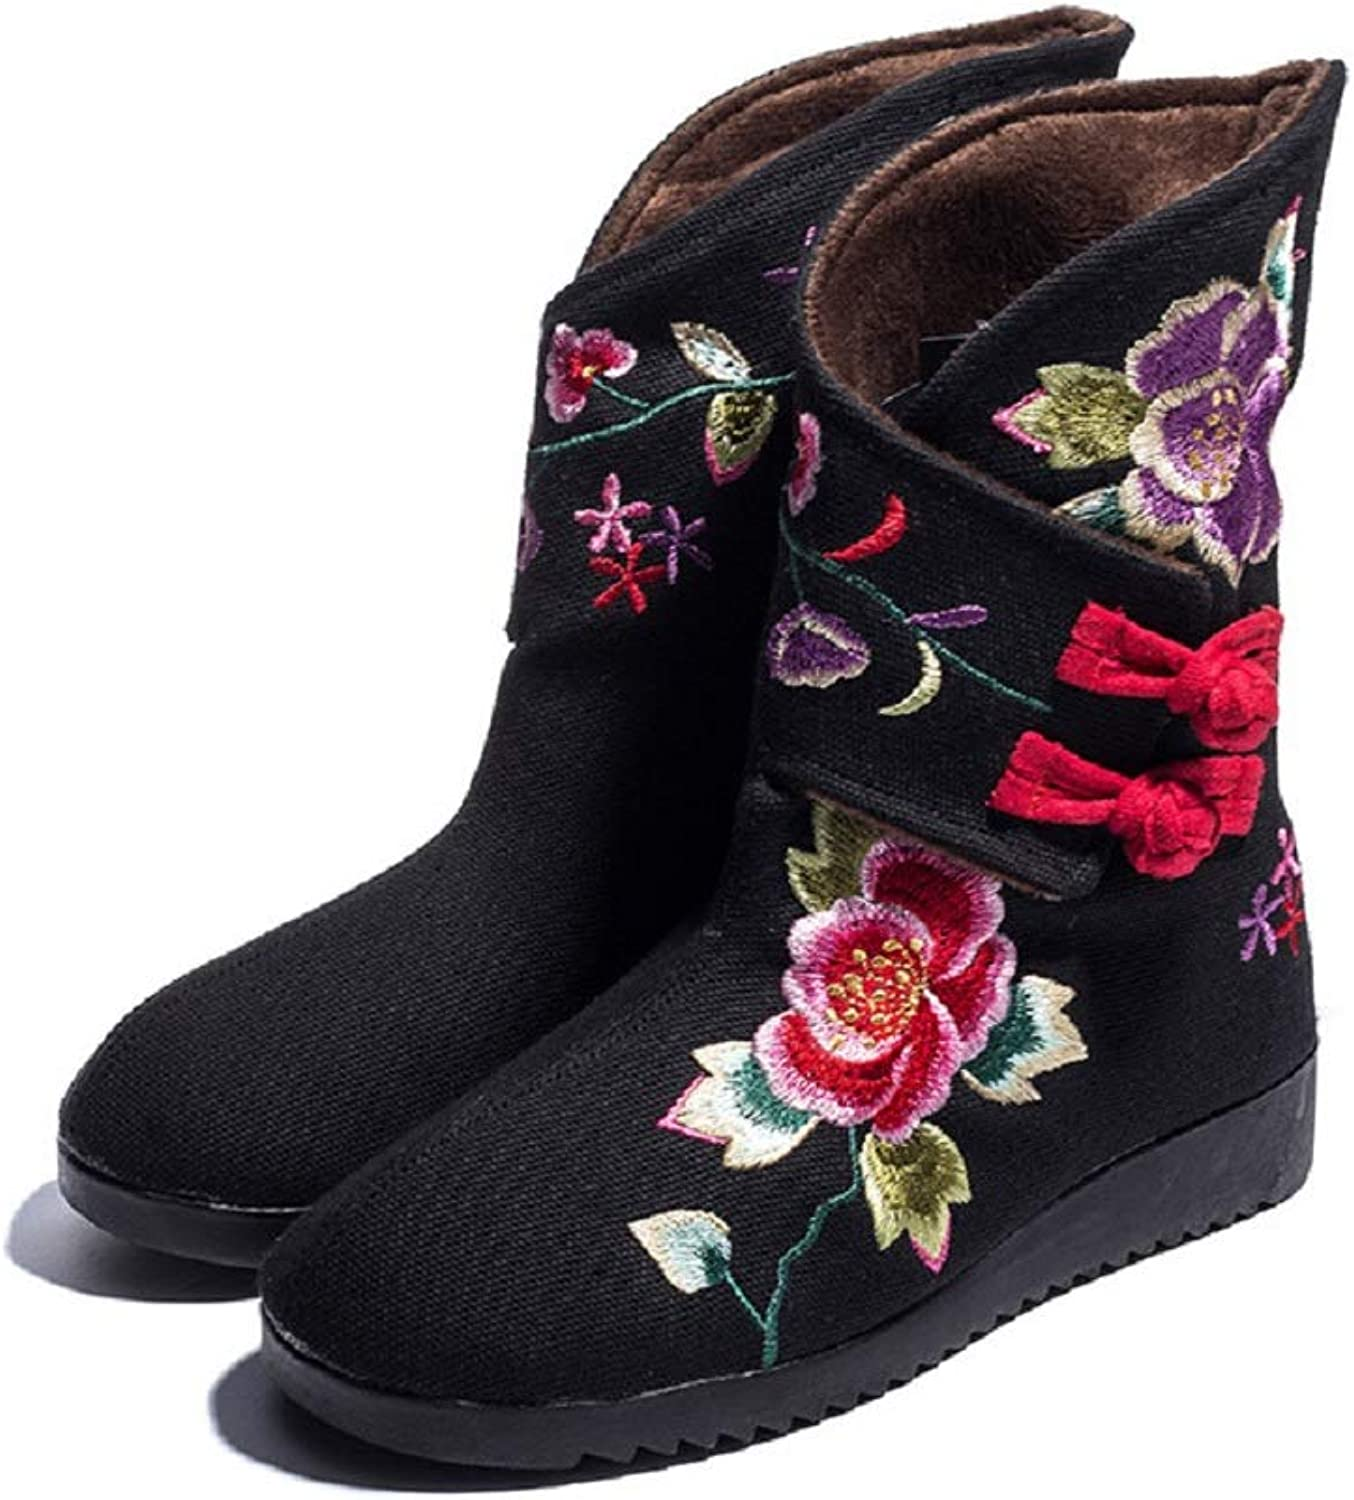 LingGT Hook Loop Boots Women Embroidery Flower Black Cotton shoes (color   Black, Size   CA 5)